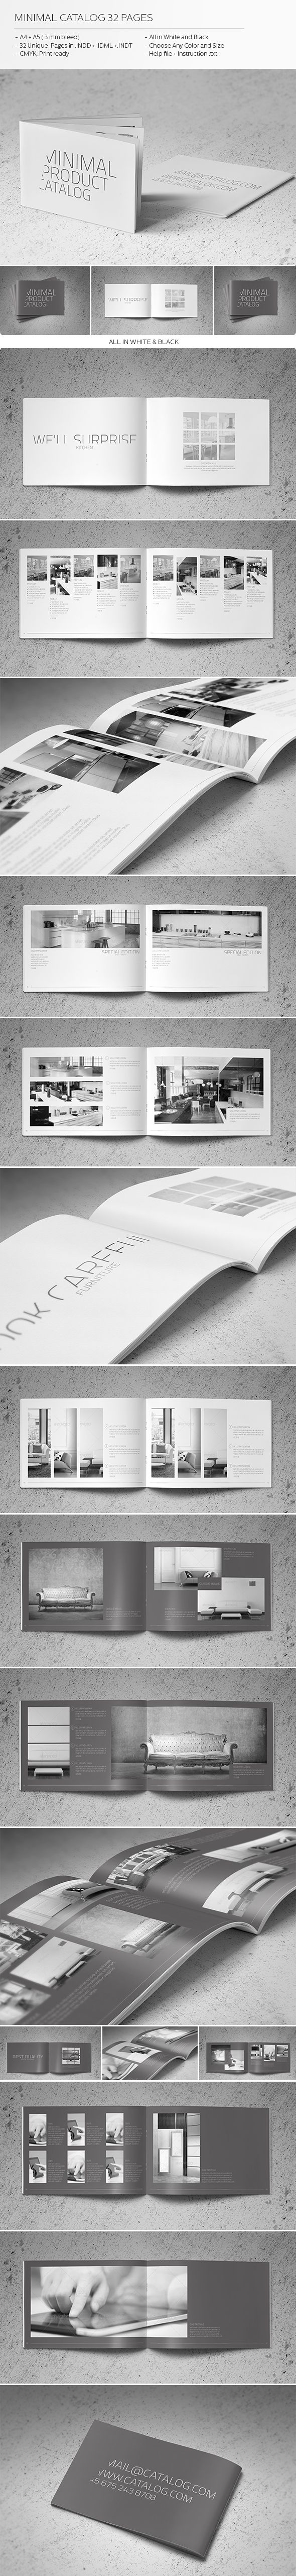 Minimal Catalog 32 Pages by Realstar , via Behance